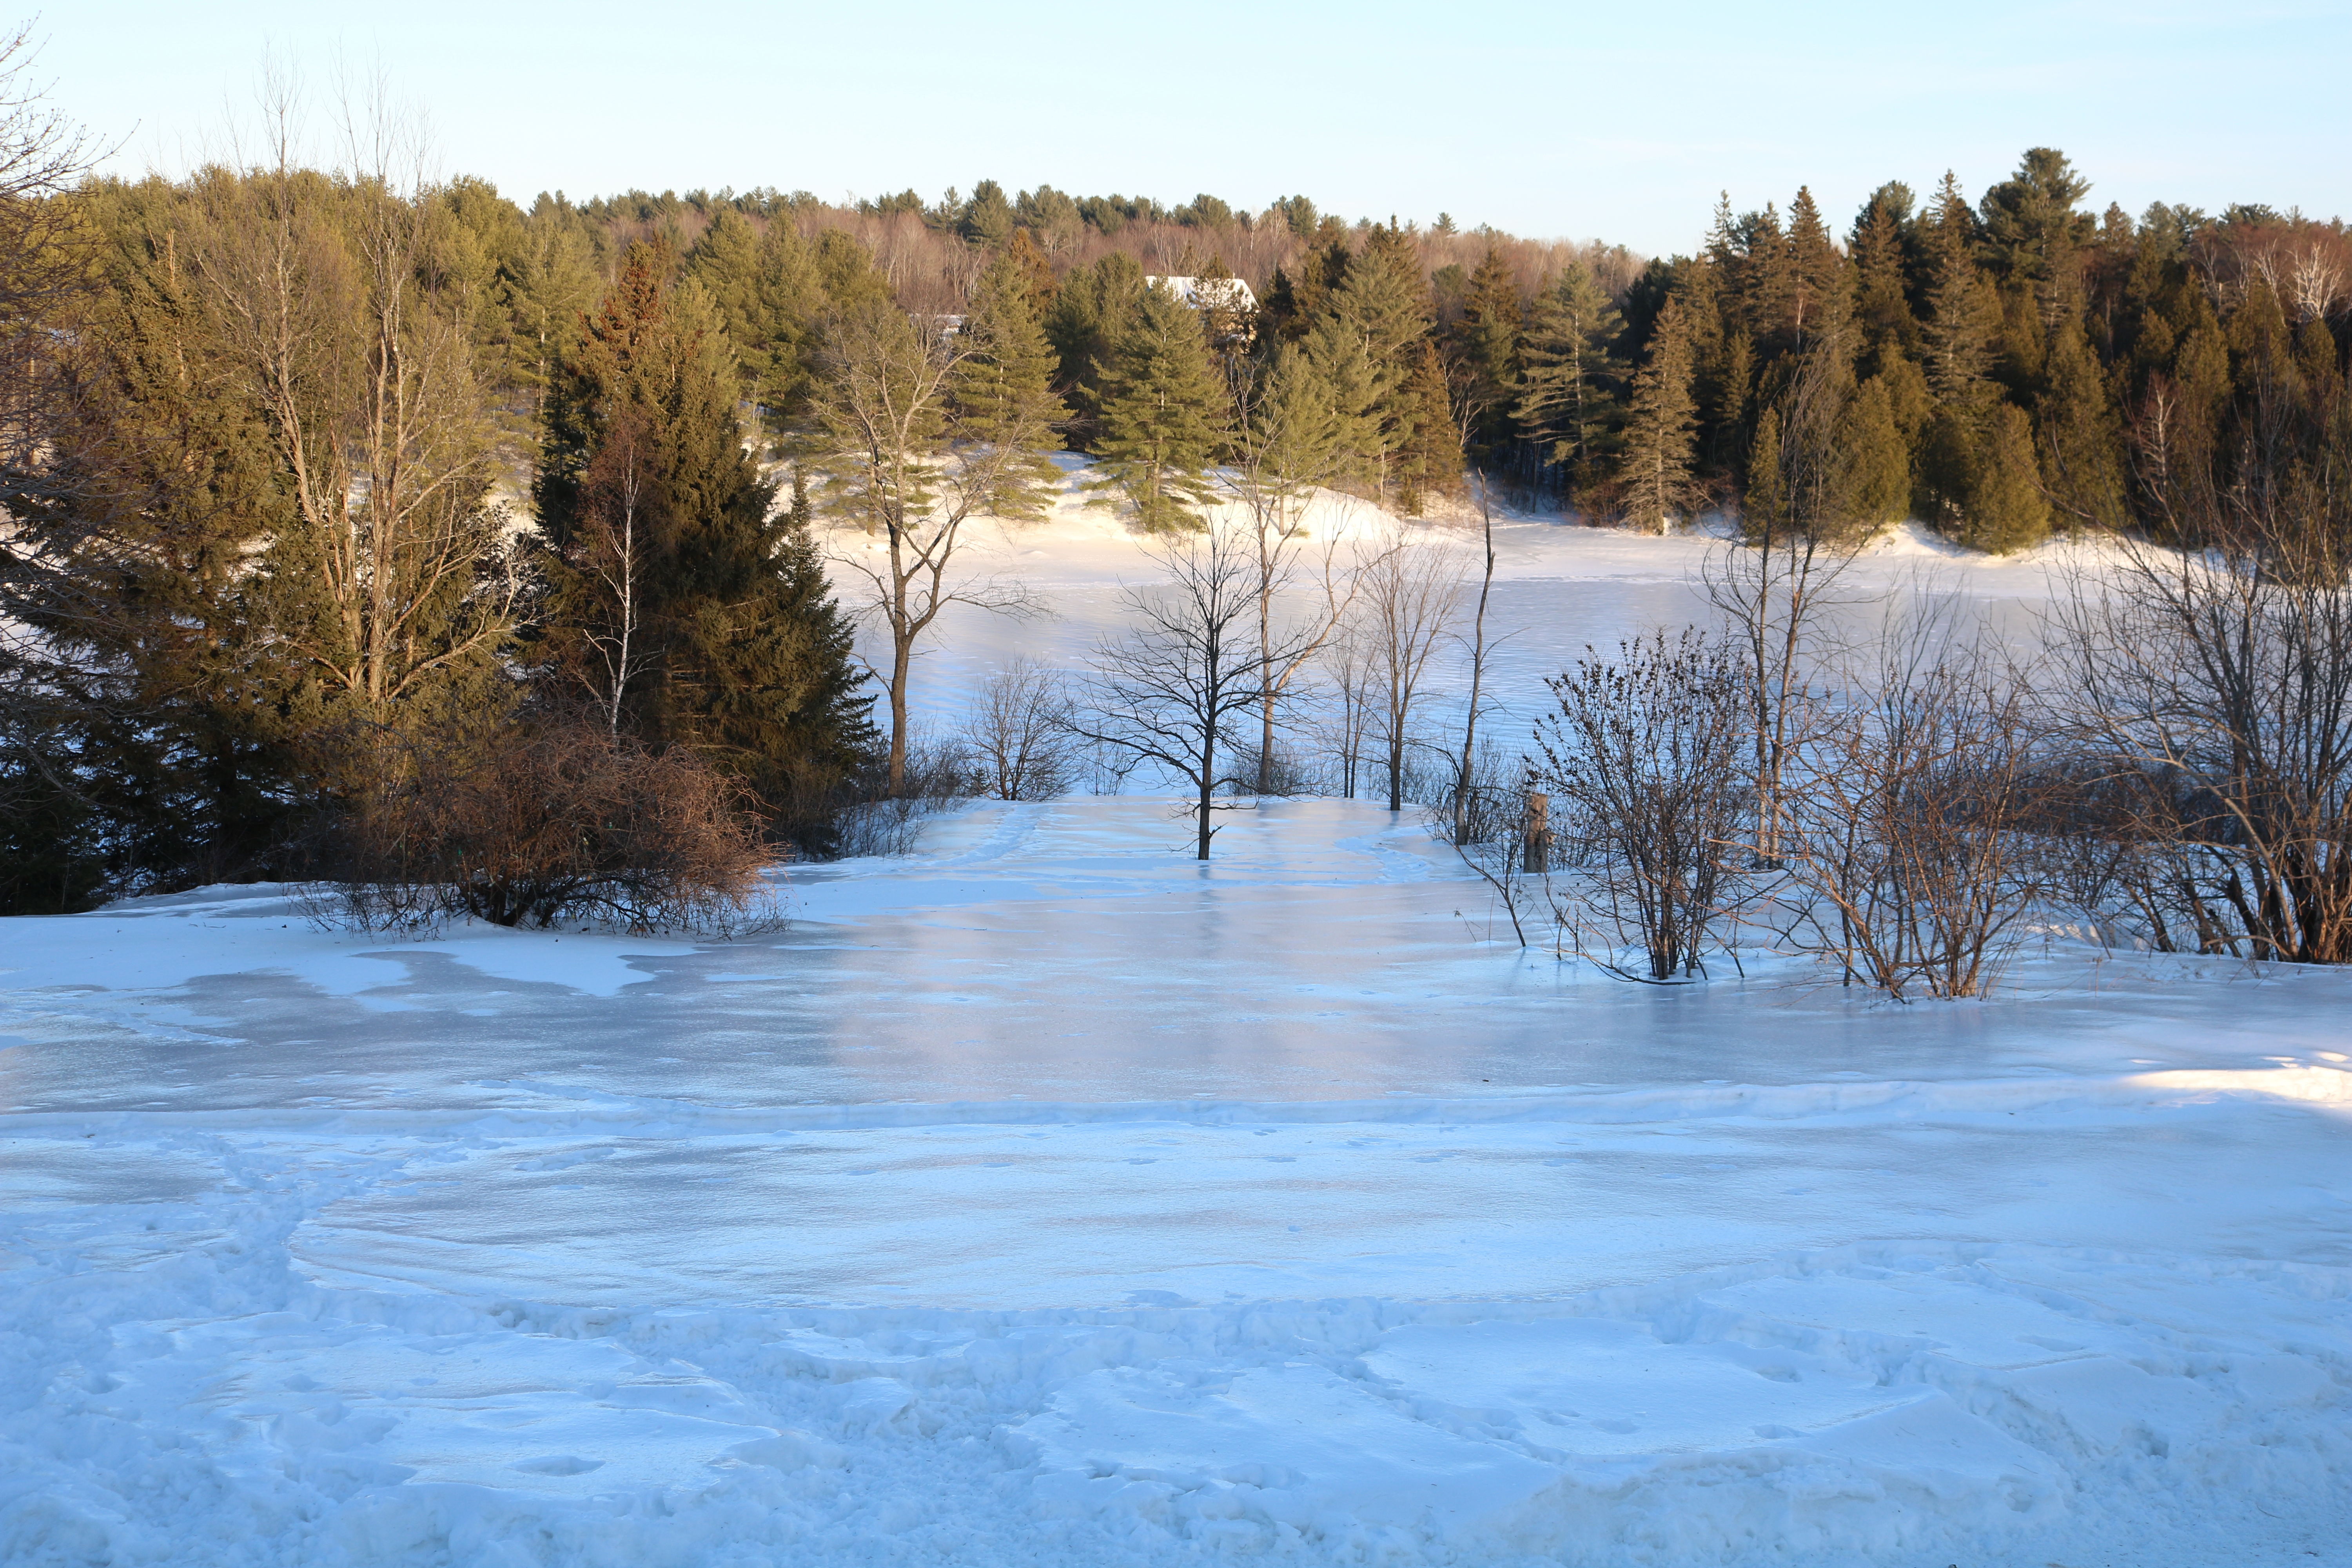 landscape photo of country scene of an icy crusty slope towards a frozen river, trees all around.